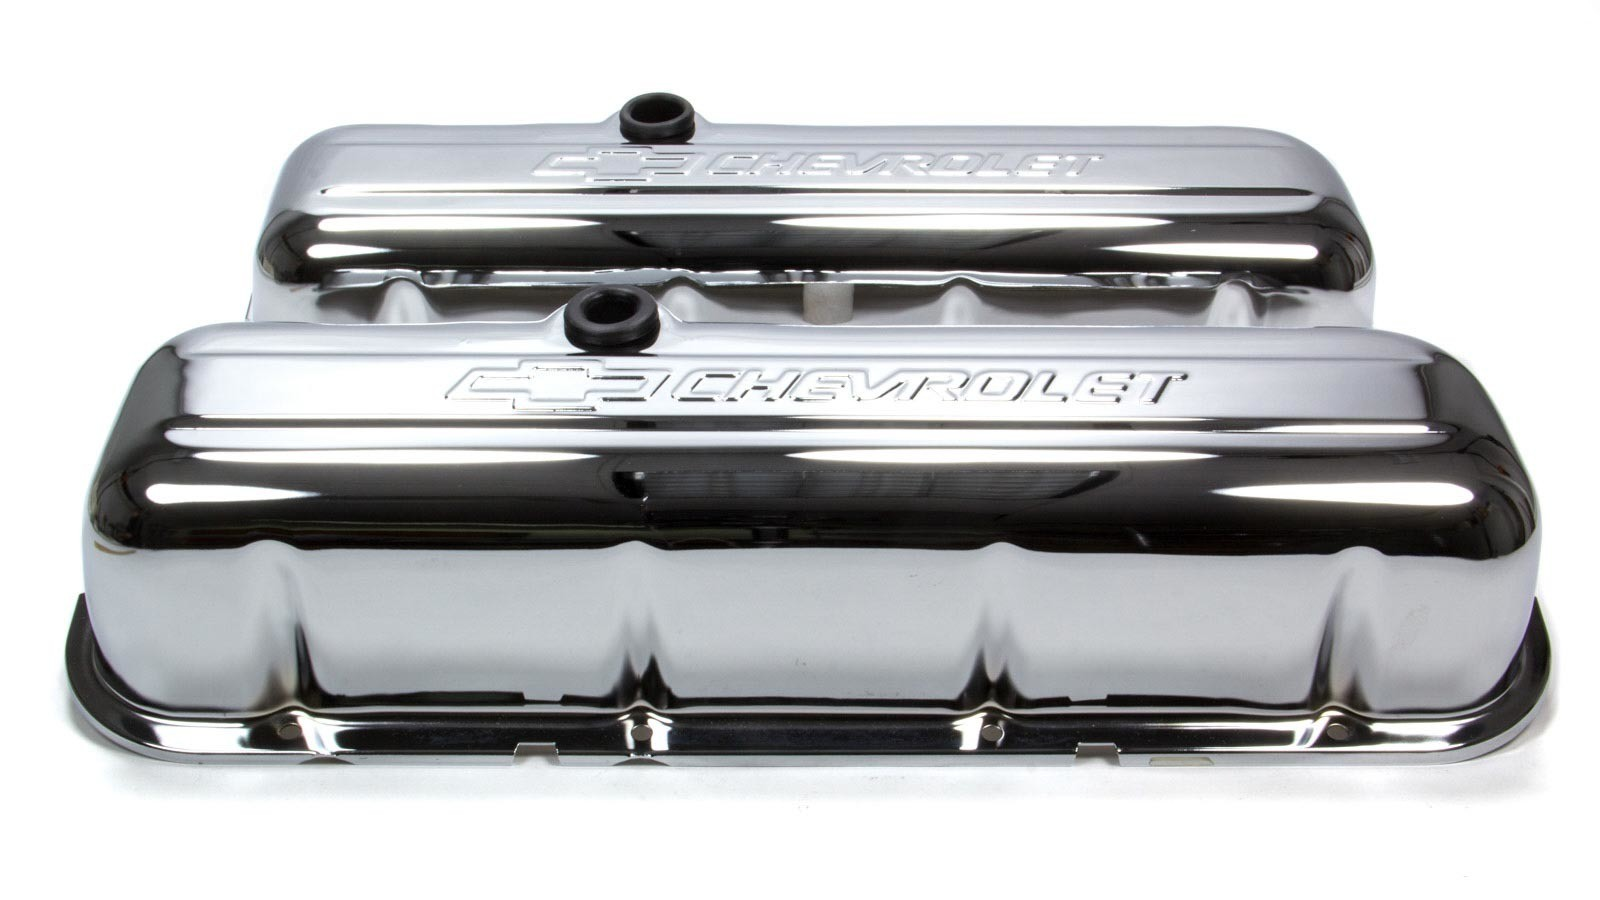 Proform 141-115 Valve Cover, Tall, Baffled, Breather Hole, Chevrolet Bowtie Logo, Steel, Chrome, Big Block Chevy, Pair